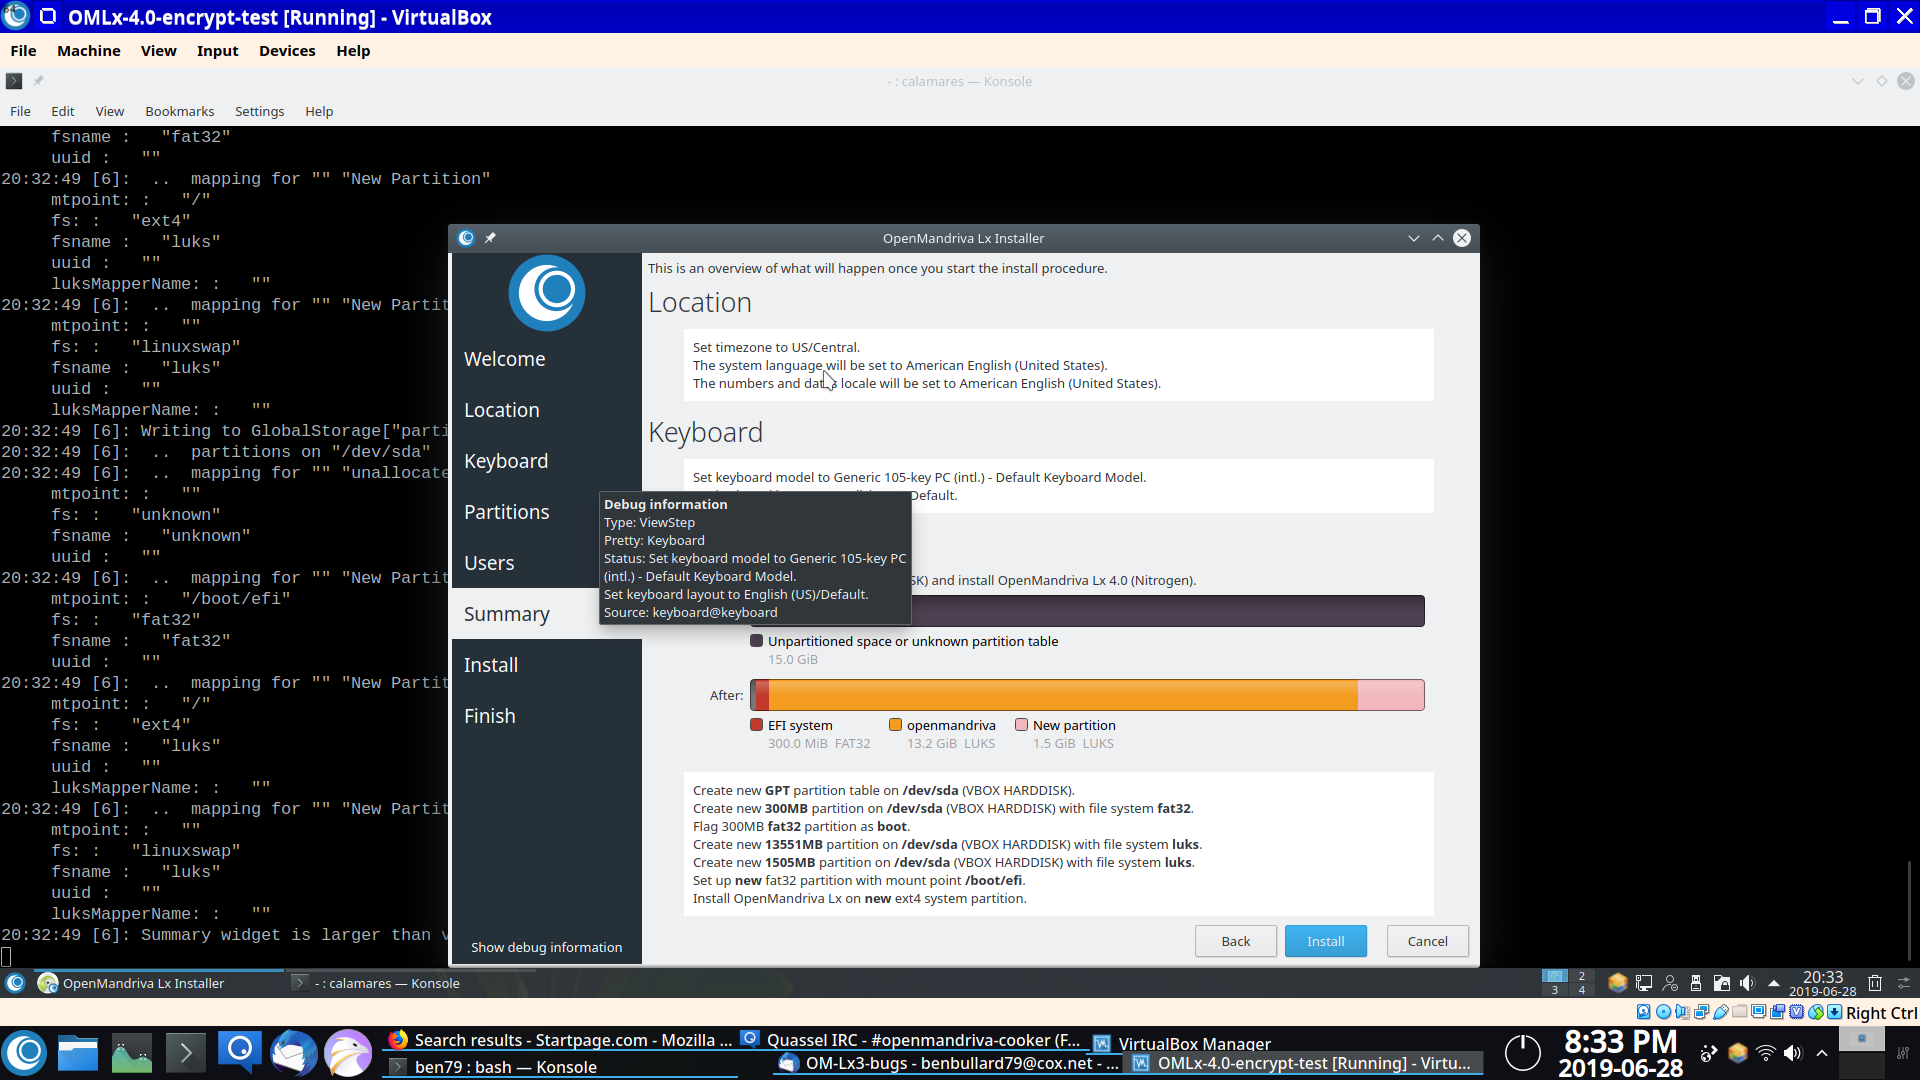 Installation in virtualbox in luks encrypted partitions failed